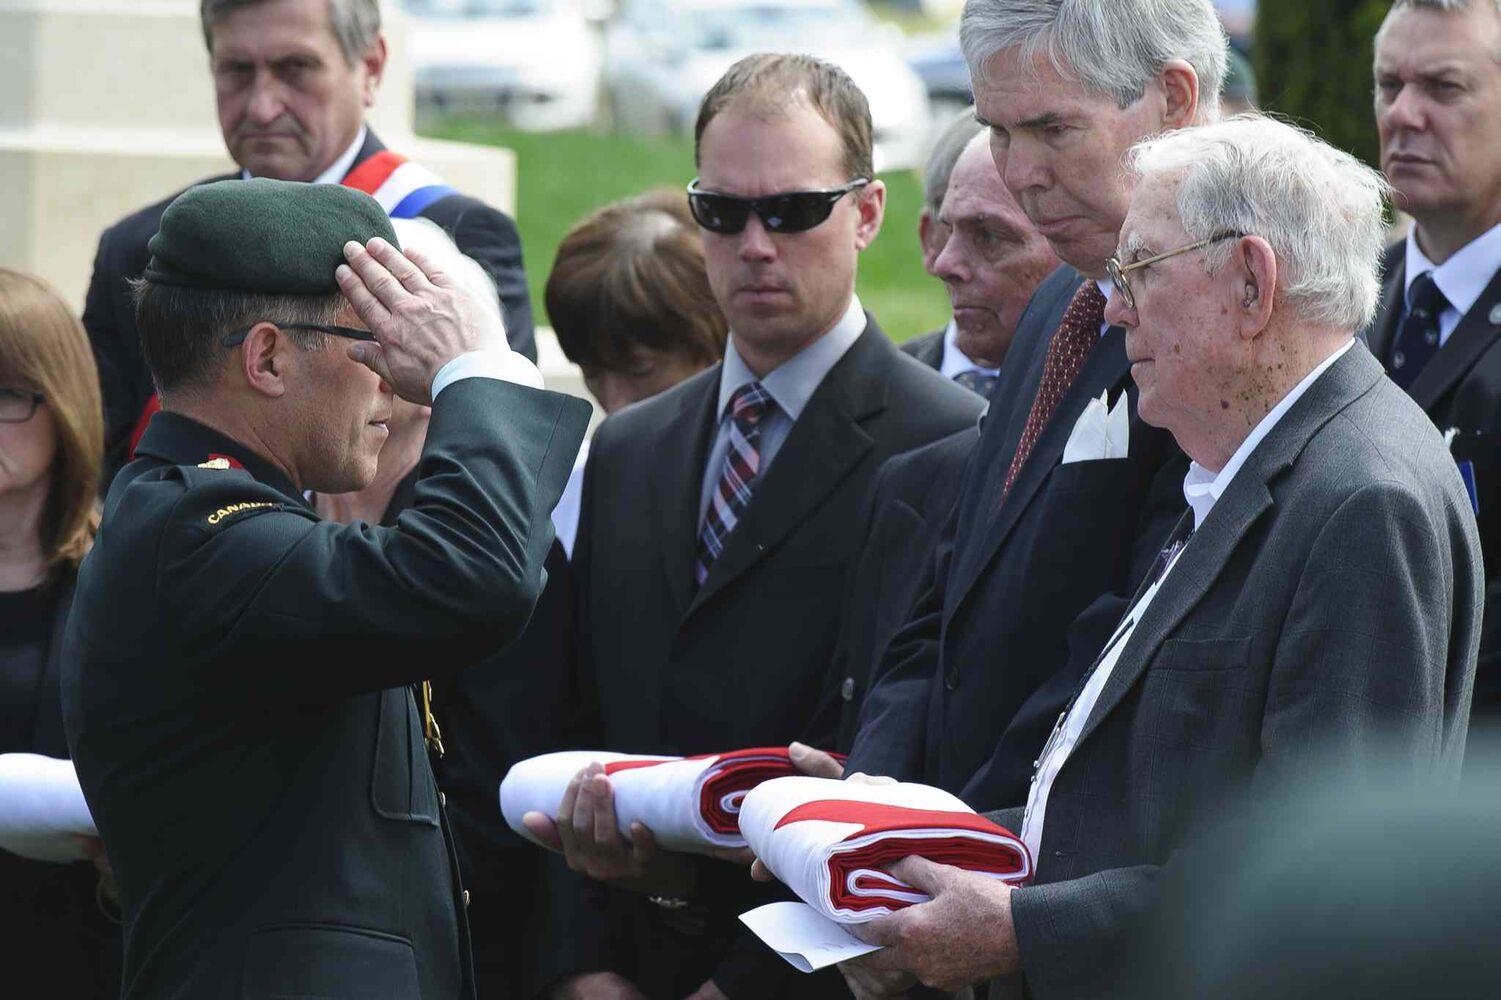 Colonel Guy Maillet, the Canadian Defence Attache Paris, salutes Clifford Teague, nephew of Lieutenant Clifford Neelands, at the burial of eight Canadian First World War soldiers from the 78th Battalion at the Caix British Cemetery in Caix, France on 13 May 2015  as part of the largest single find of unknown Canadian soldiers since the Canadian Armed Forces Casualty Identification program started in 2006. (Corporal Jordan Lobb, Canadian Forces Joint Imagery Center, Ottawa)